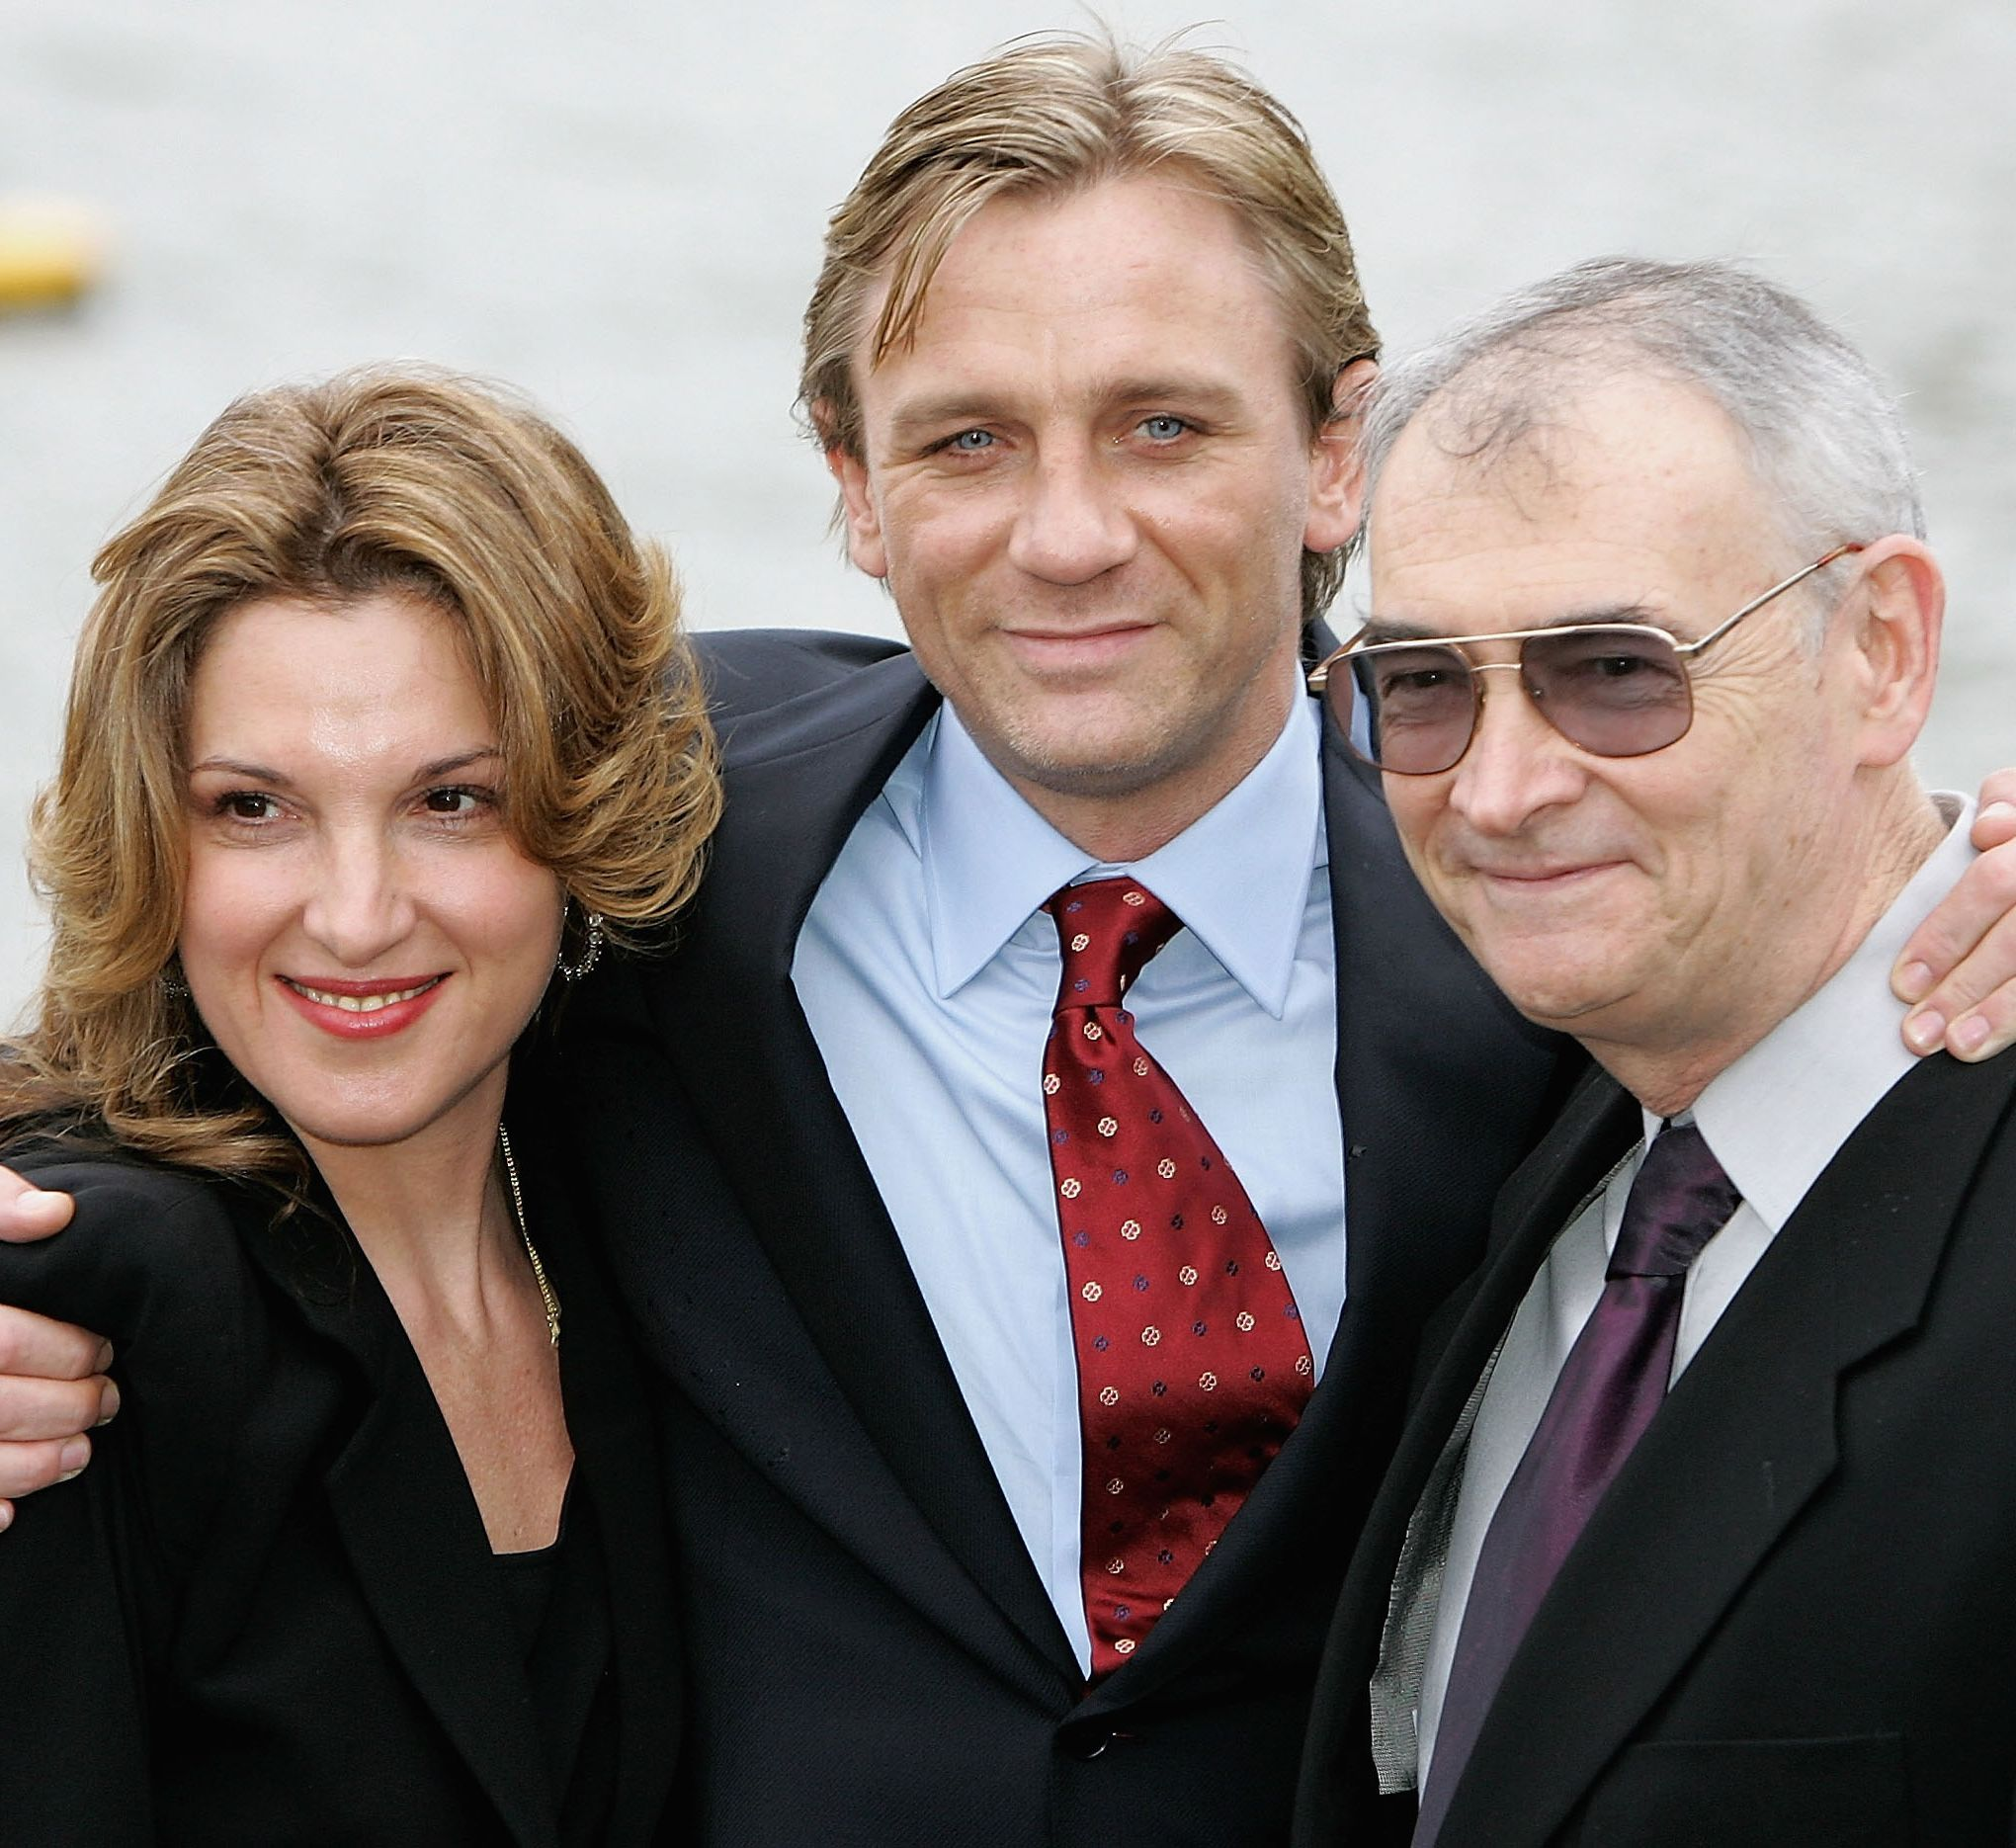 Daniel Craig with Broccoli and her stepbrother Michael G. Wilson in 2005.